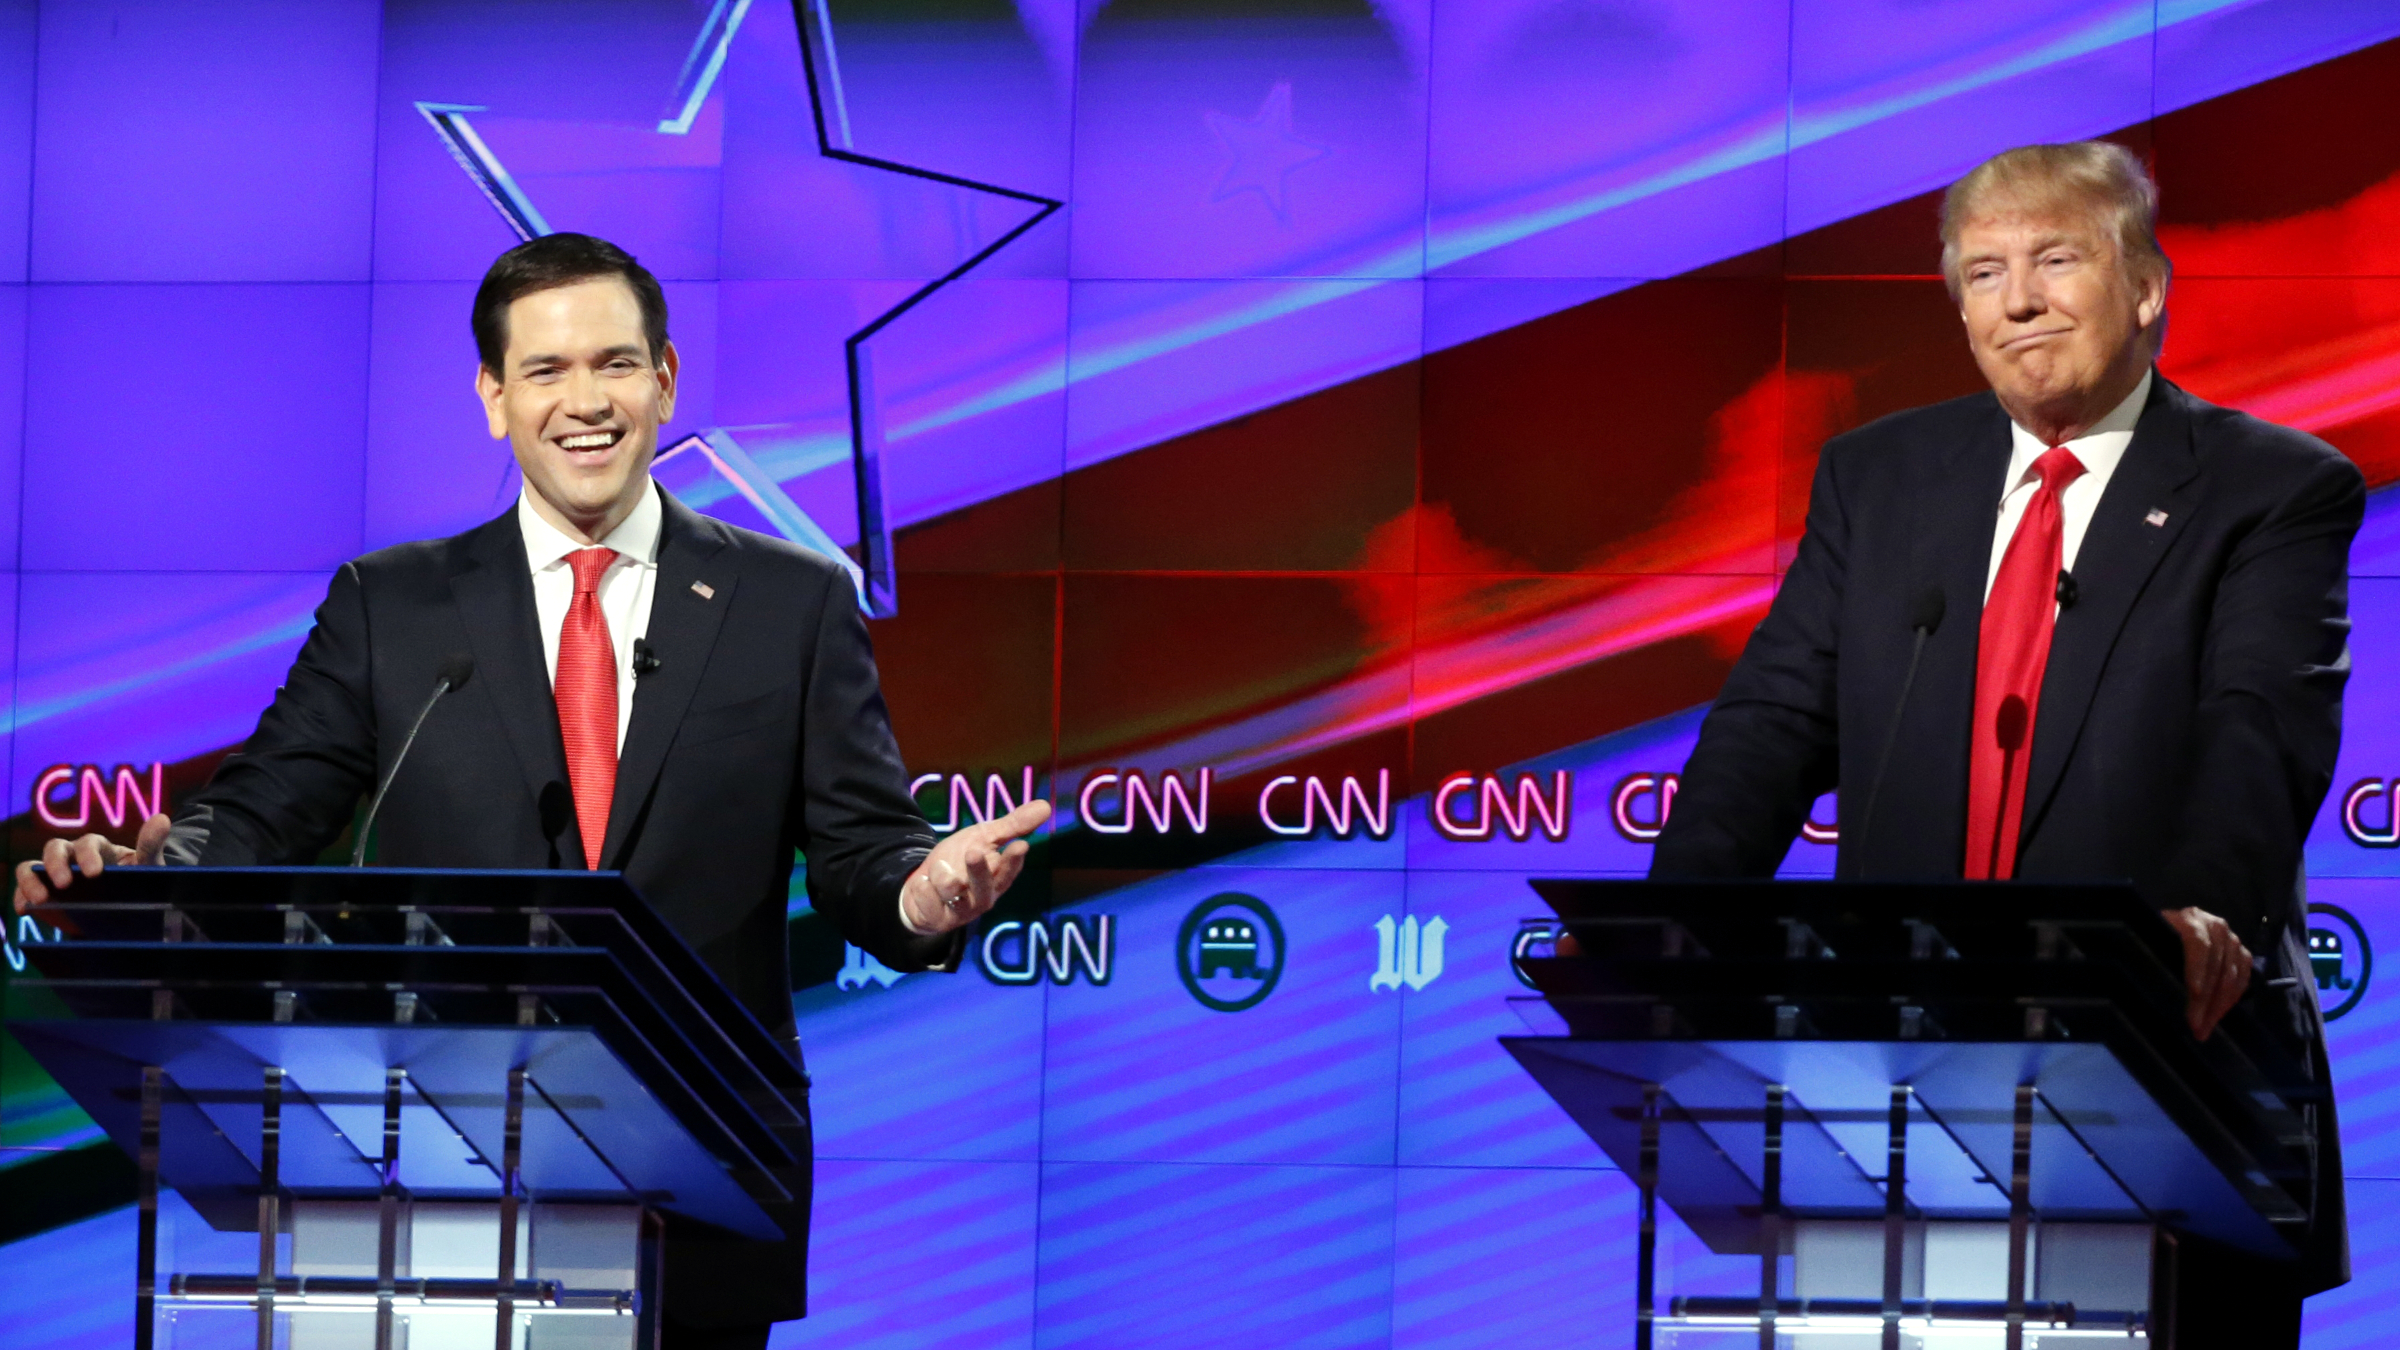 Republican presidential candidate, Sen. Marco Rubio, R-Fla., smiles, as Republican presidential candidate, businessman Donald Trump, grimaces, during the Republican presidential debate sponsored by CNN, Salem Media Group and the Washington Times at the University of Miami, Thursday, March 10, 2016, in Coral Gables, Fla.